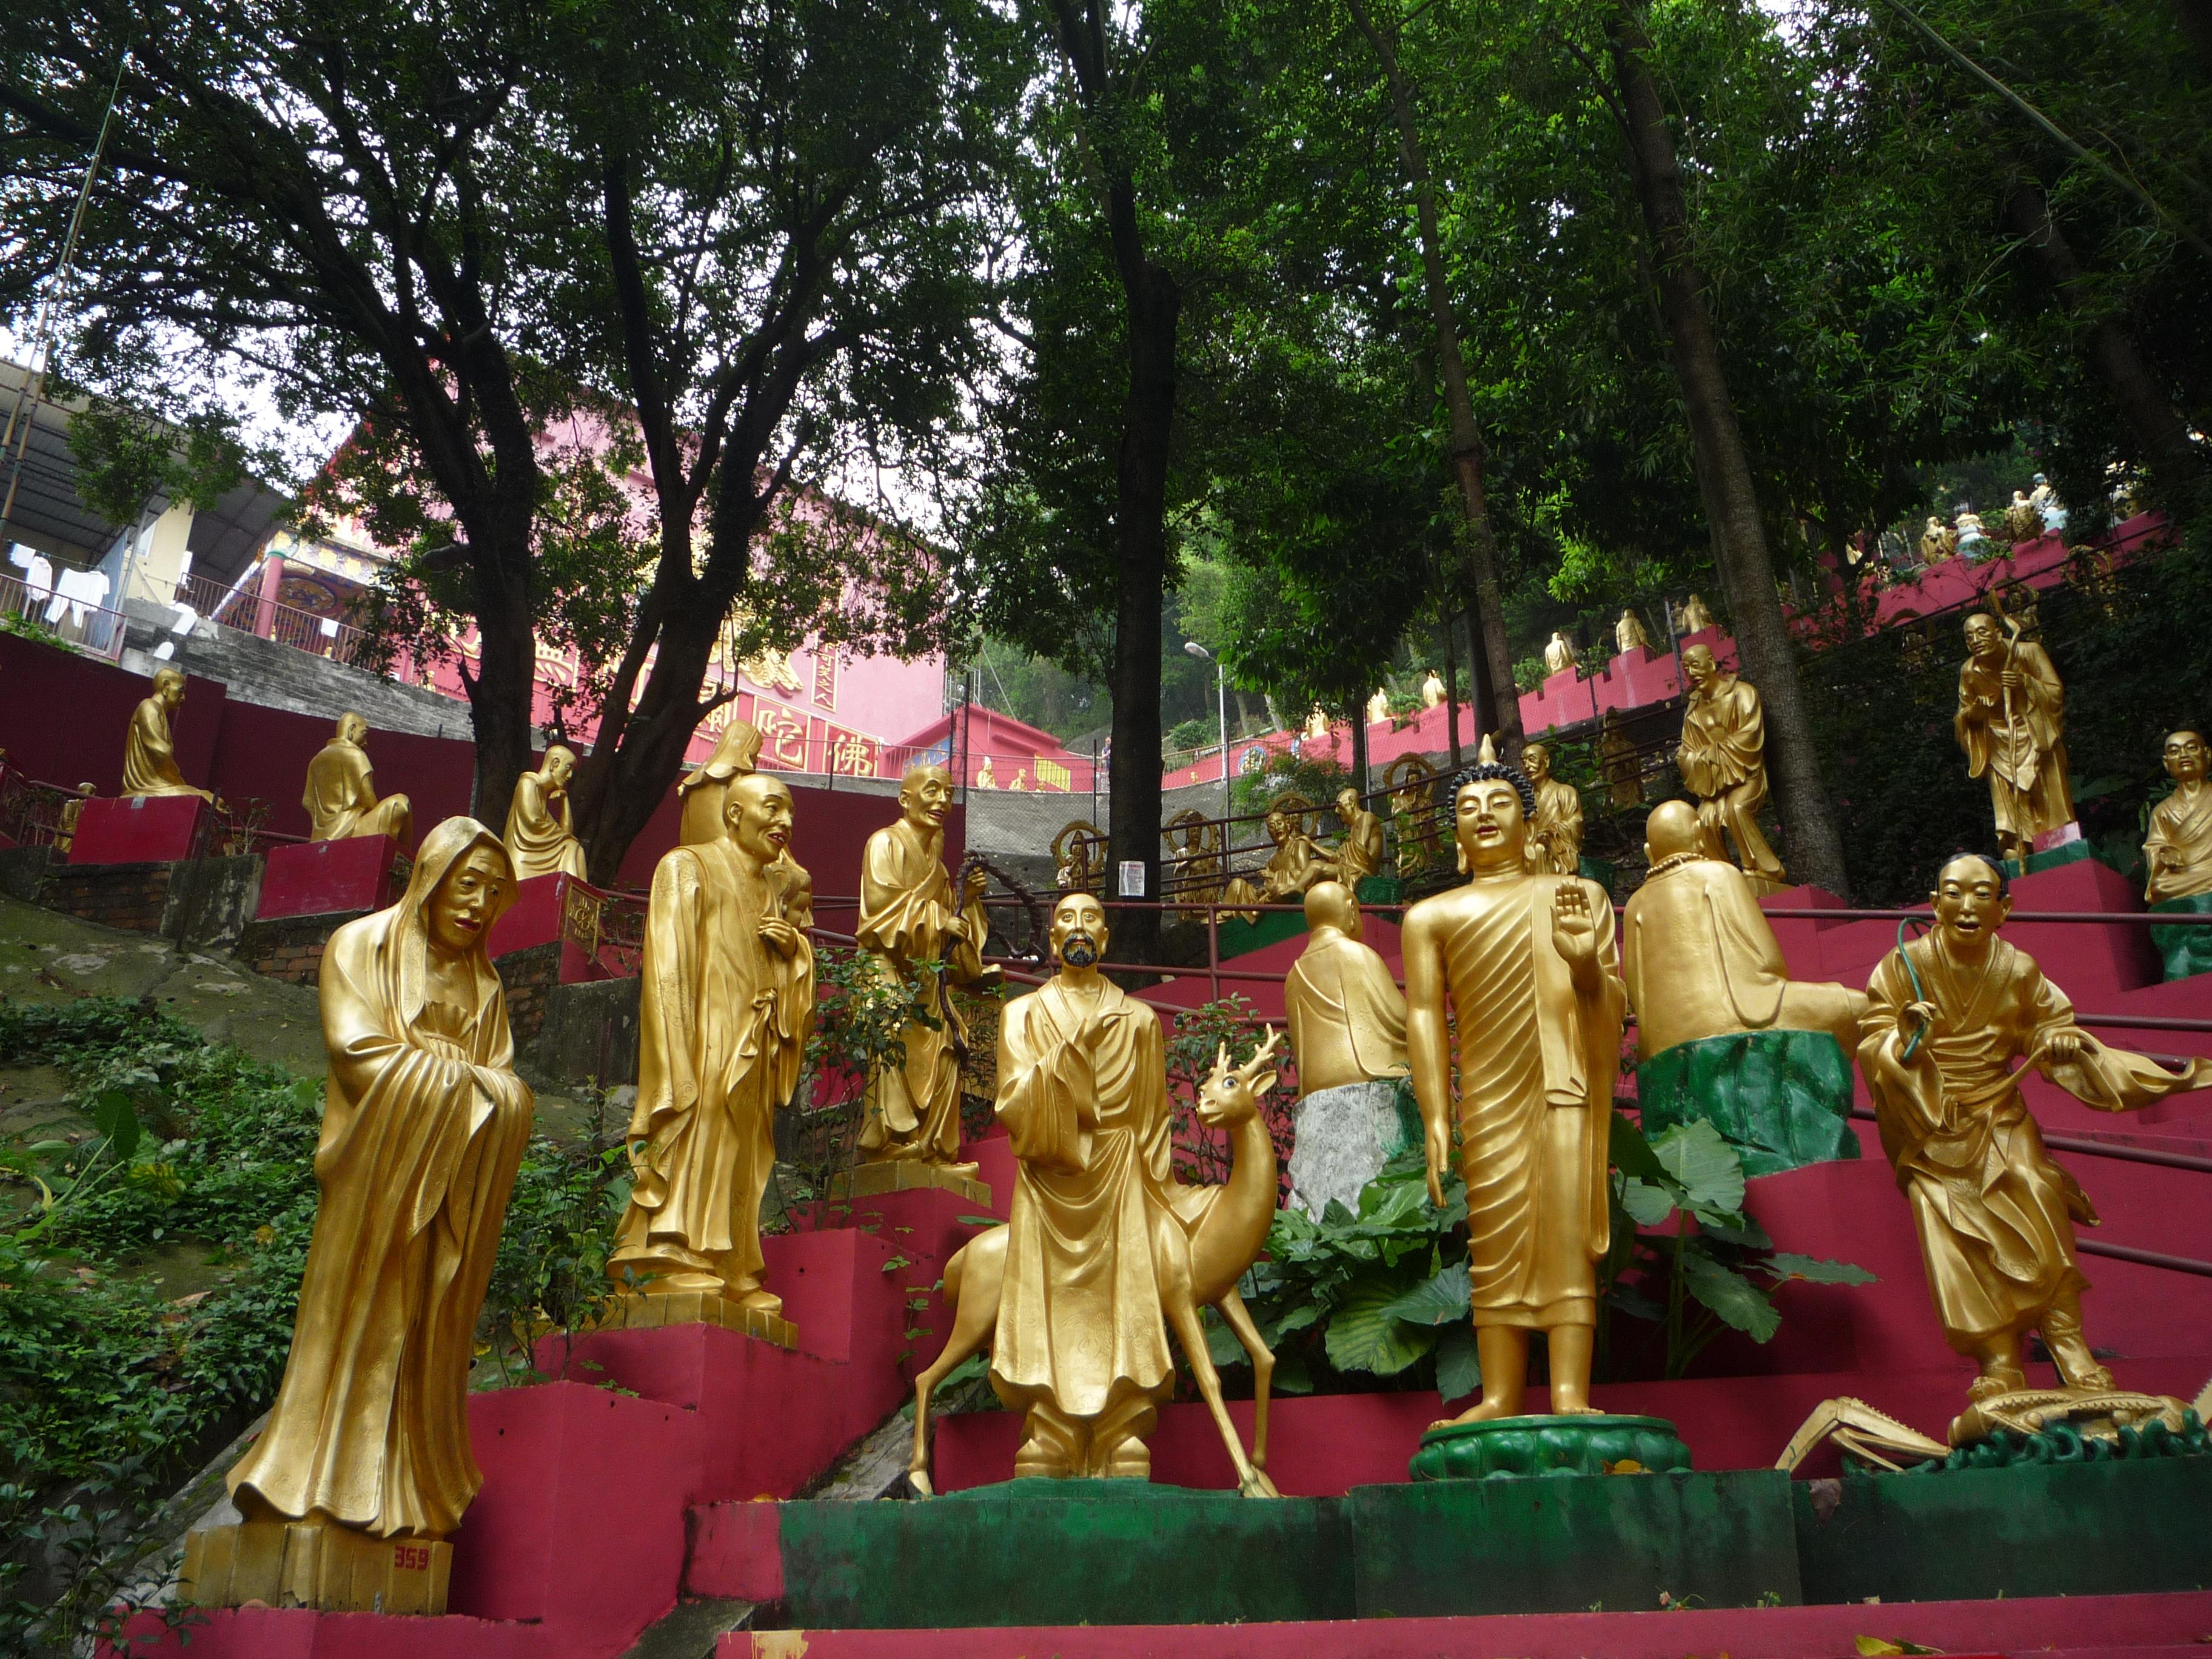 10000 buddhas monastery how to get there